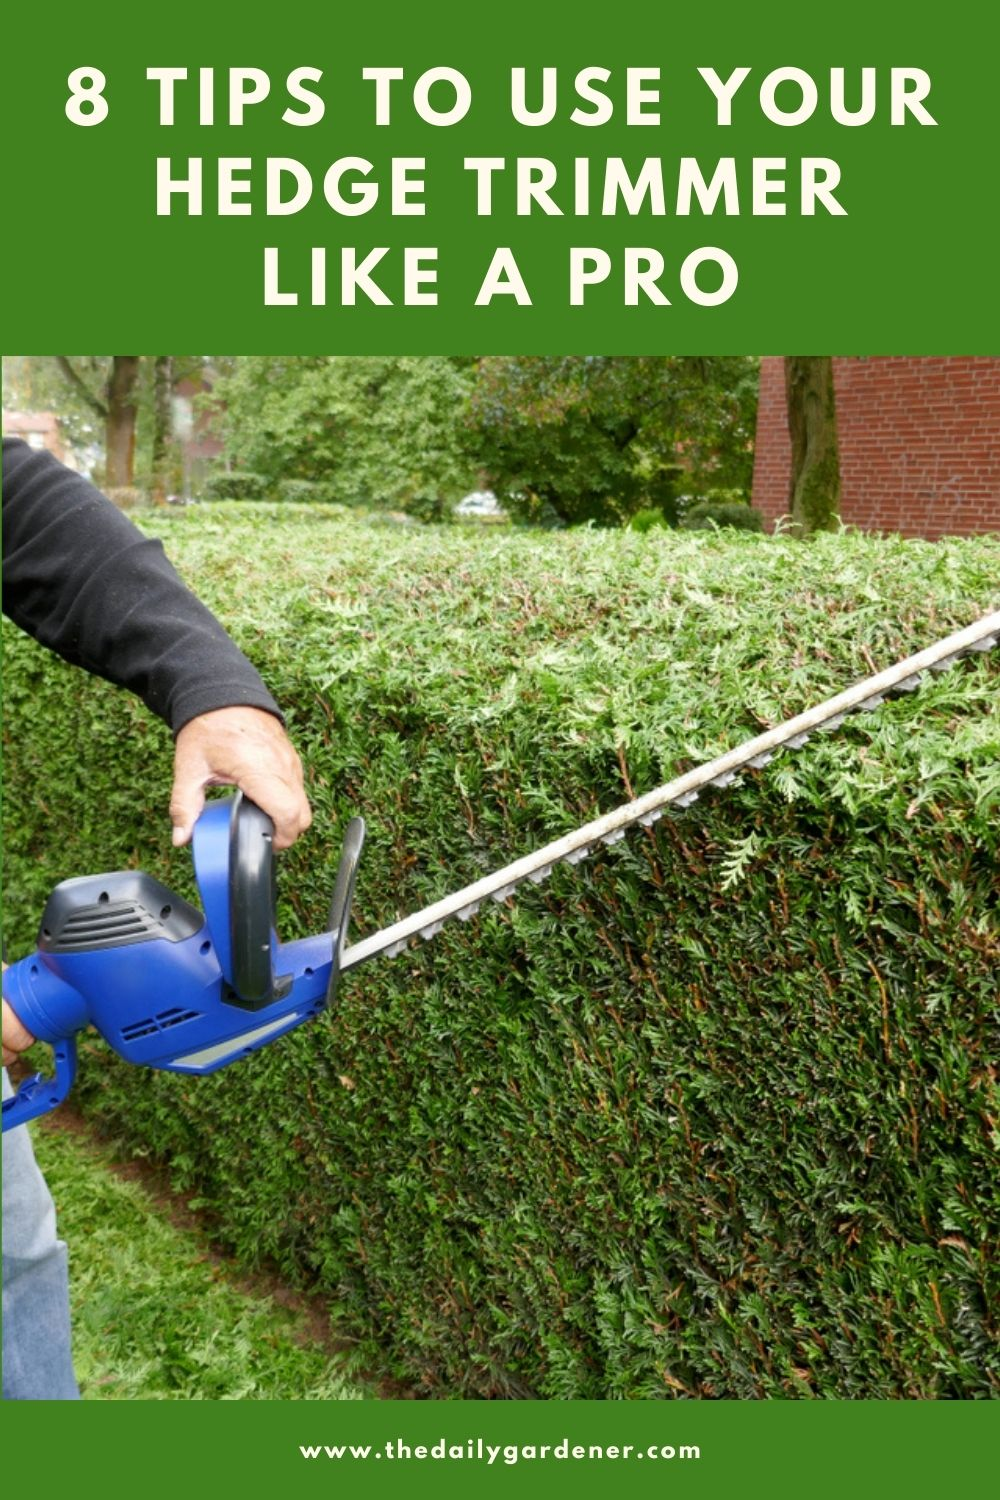 8 Tips to Use Your Hedge Trimmer like a Pro 1